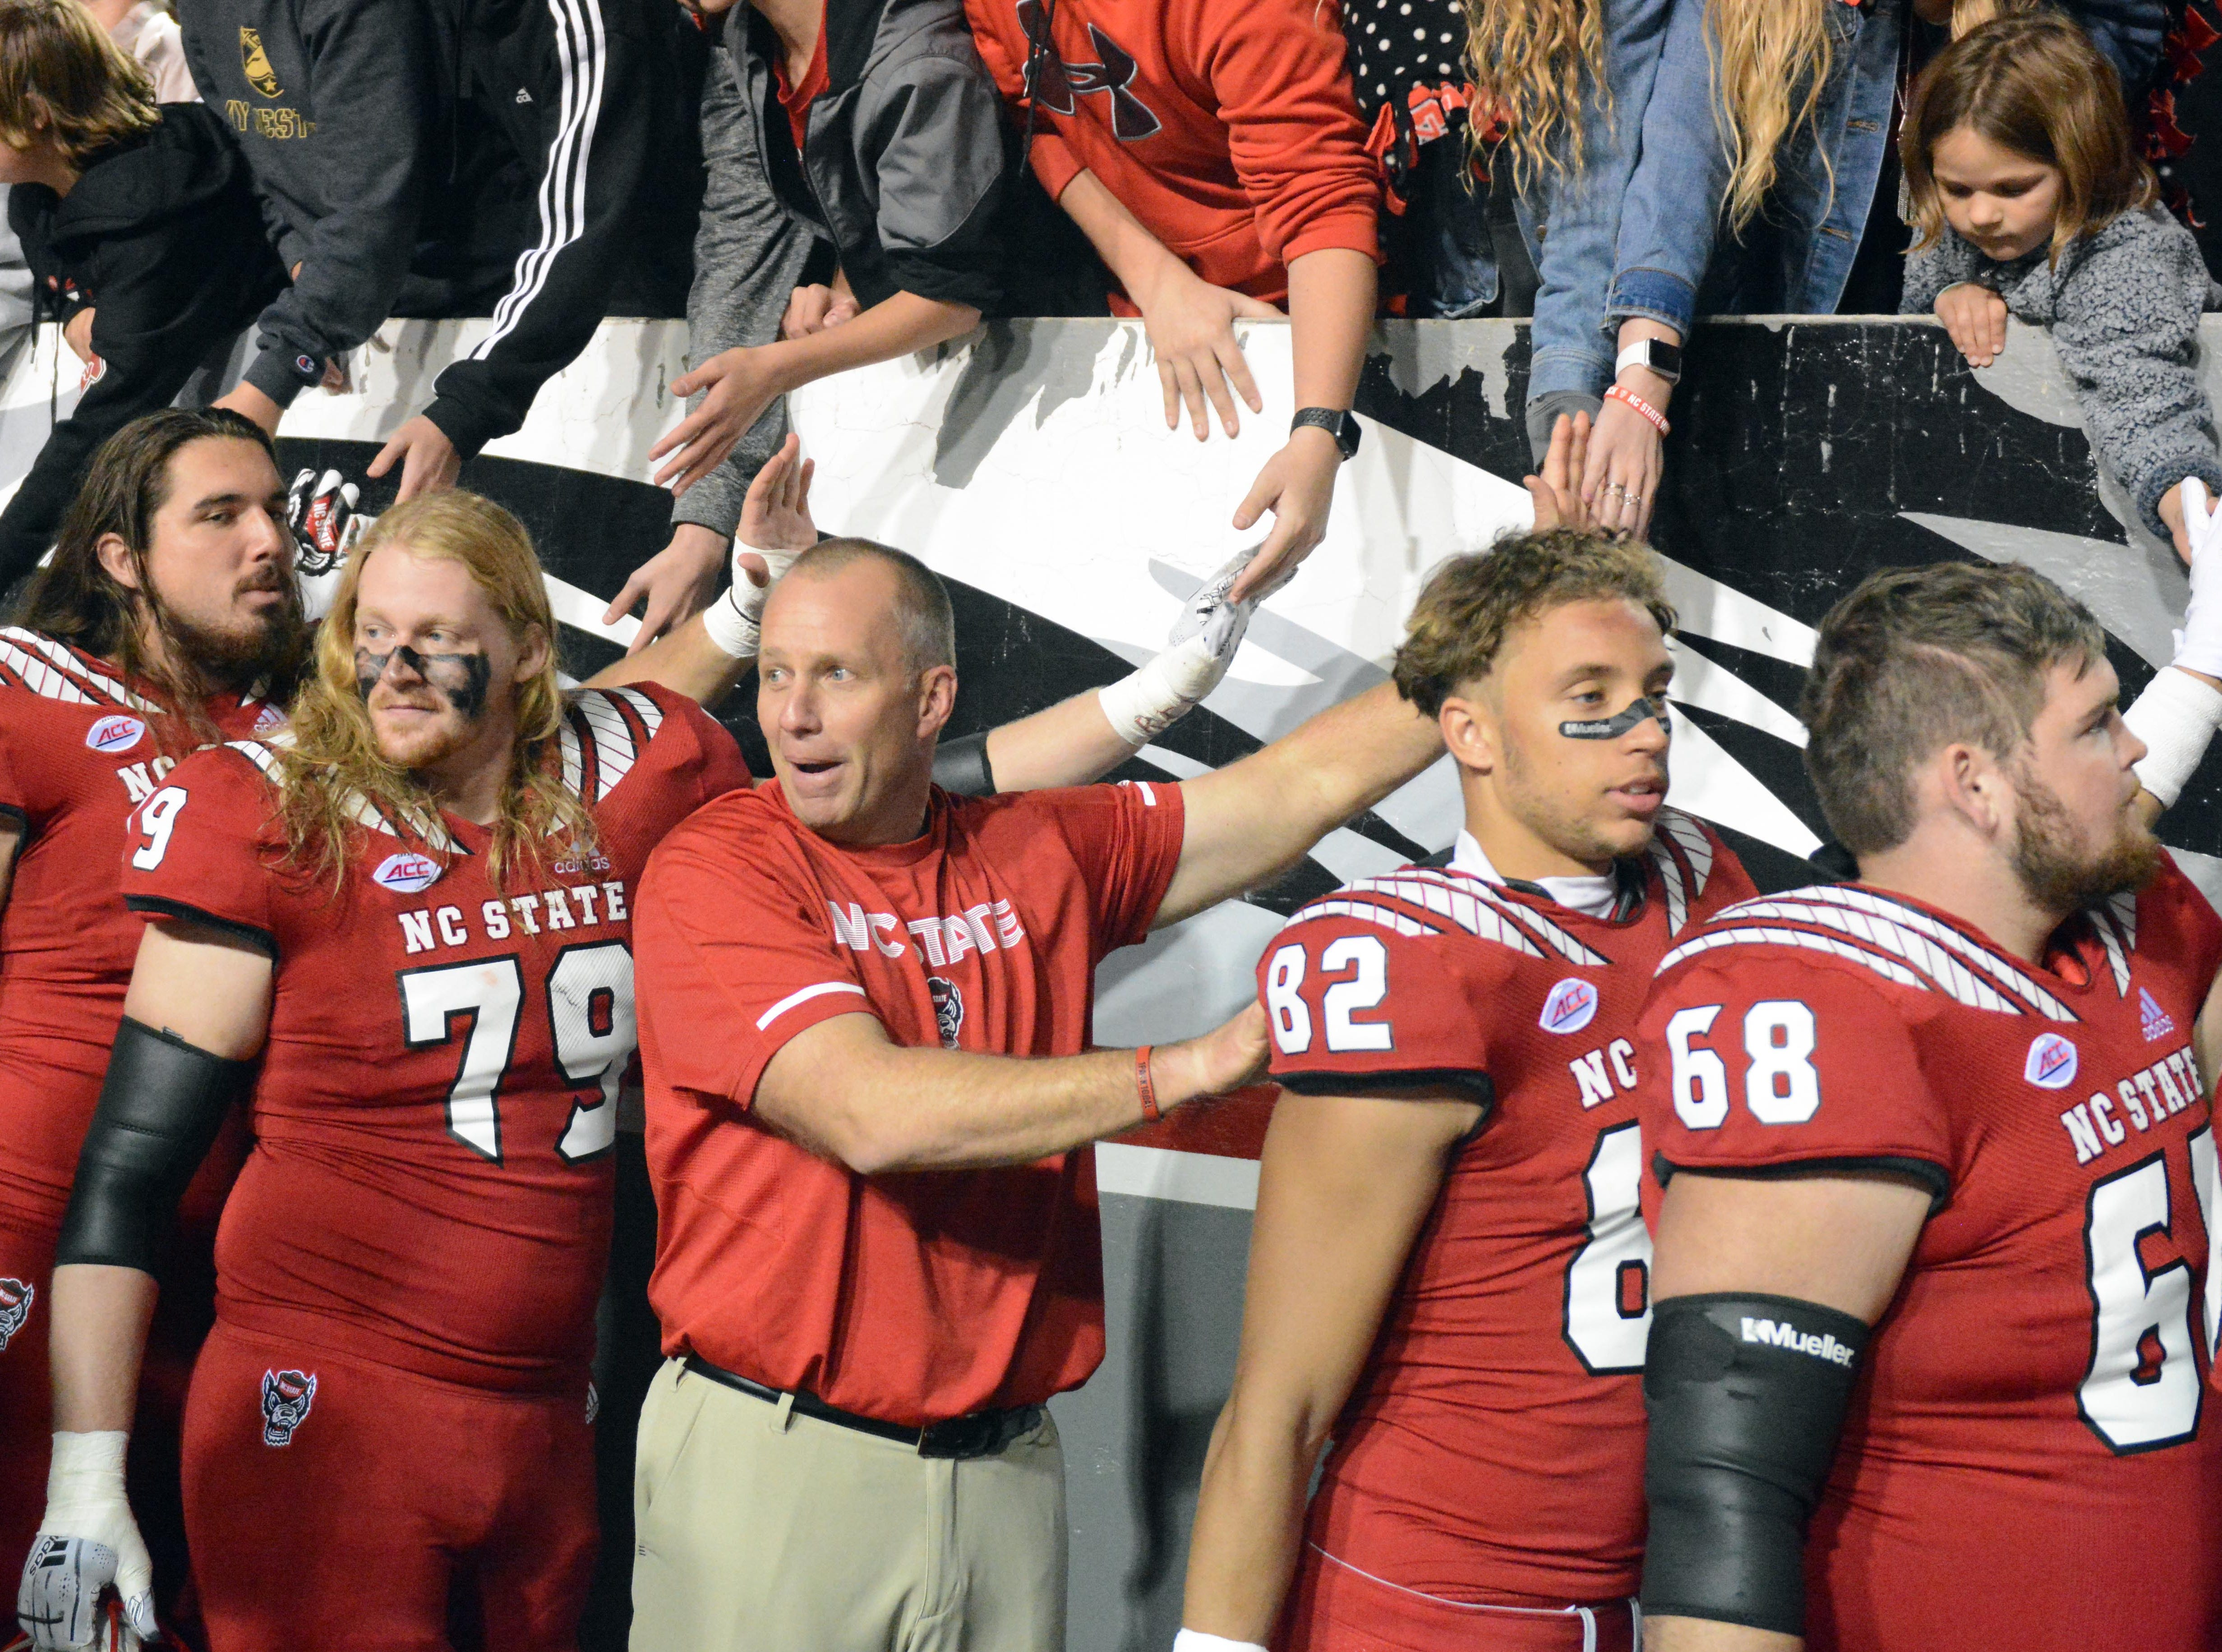 Nov 3, 2018; Raleigh, NC, USA; North Carolina State Wolfpack head coach Dave Doeren (center) greets fans after a victory against the Florida State Seminoles at Carter-Finley Stadium.  The Wolfpack won 47-28.  Mandatory Credit: Rob Kinnan-USA TODAY Sports